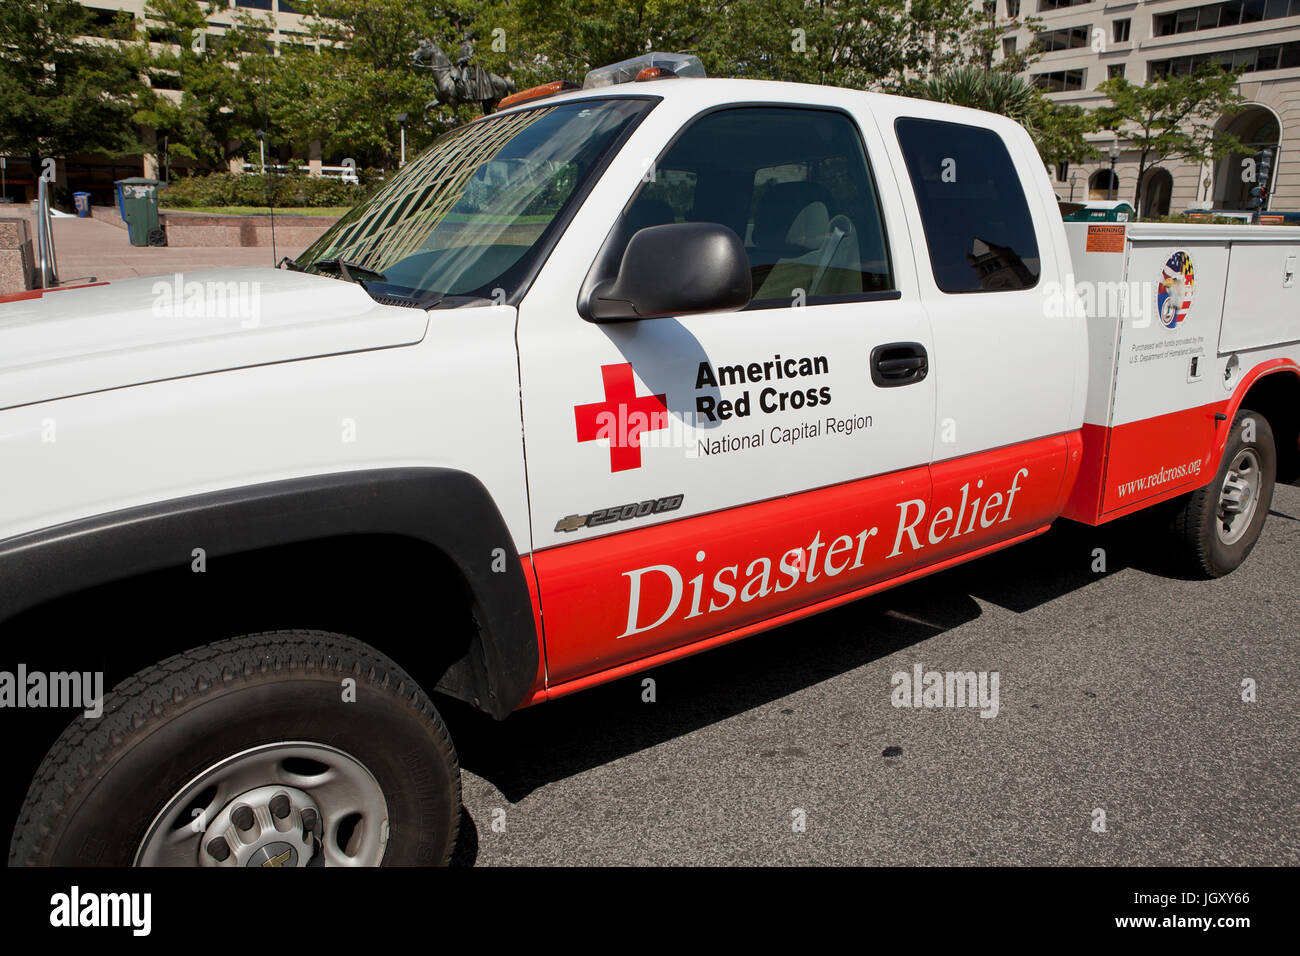 American Red Cross Disaster Relief vehicle - USA - Stock Image